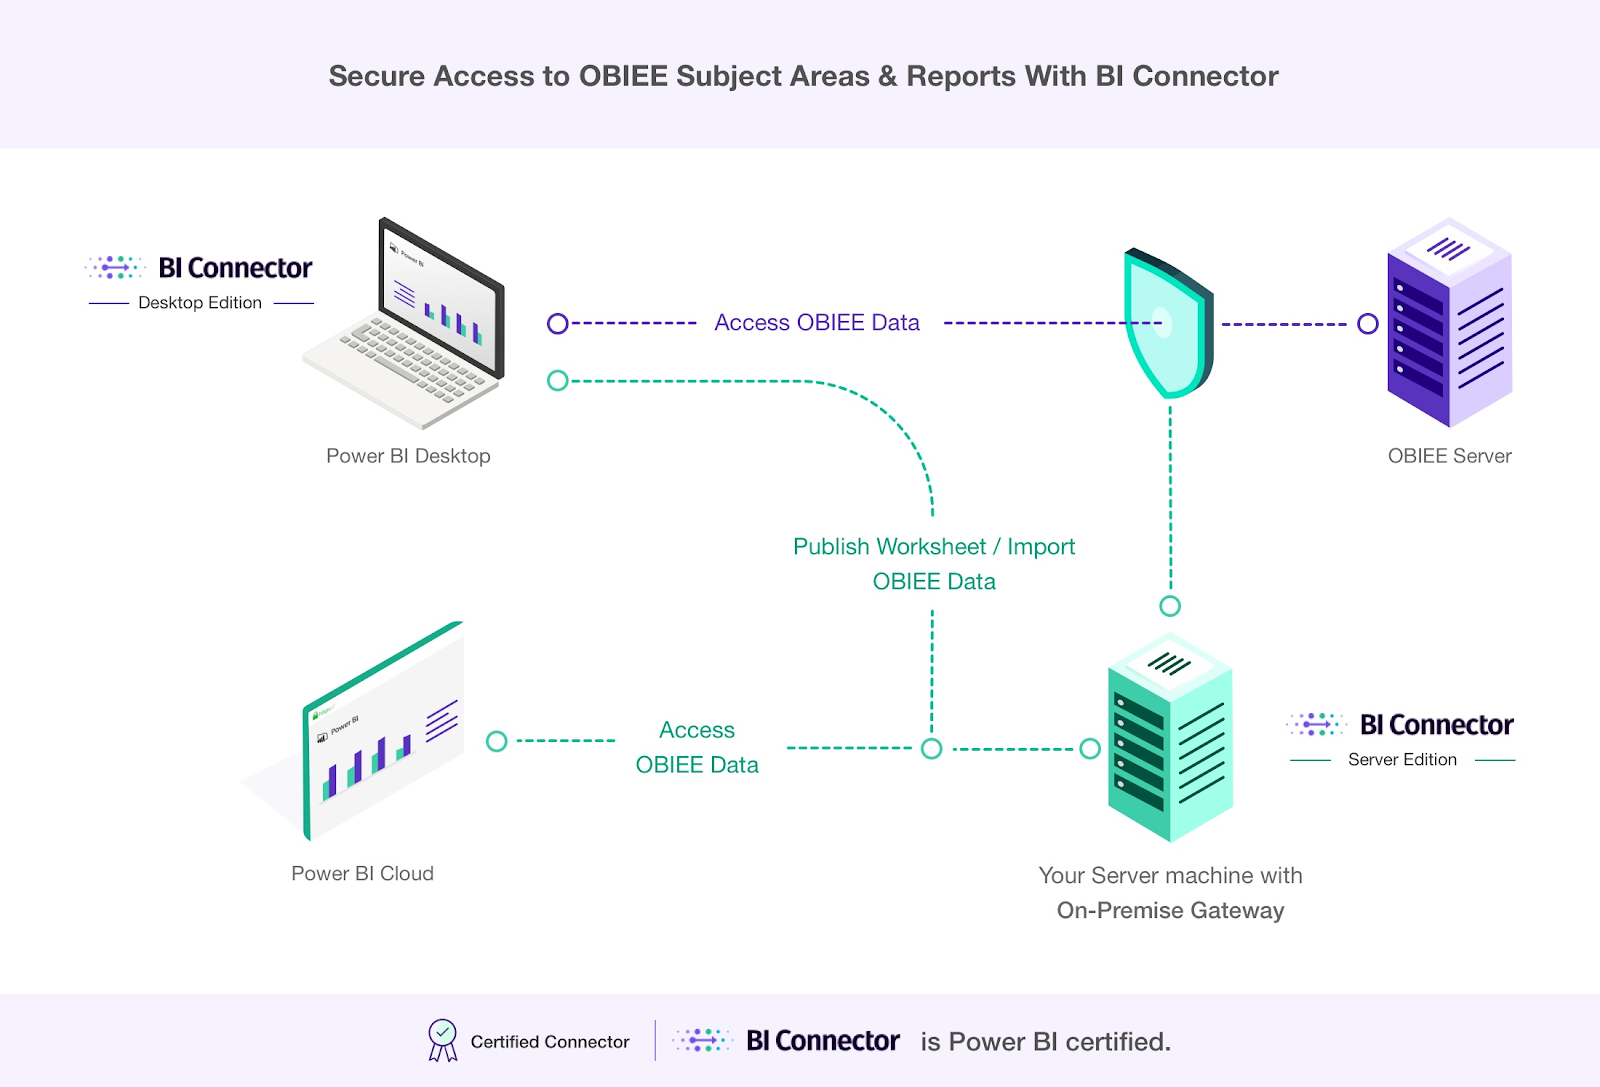 BI Connector Reference Architecture for Connecting Power BI to OBIEE and Oracle Analytics